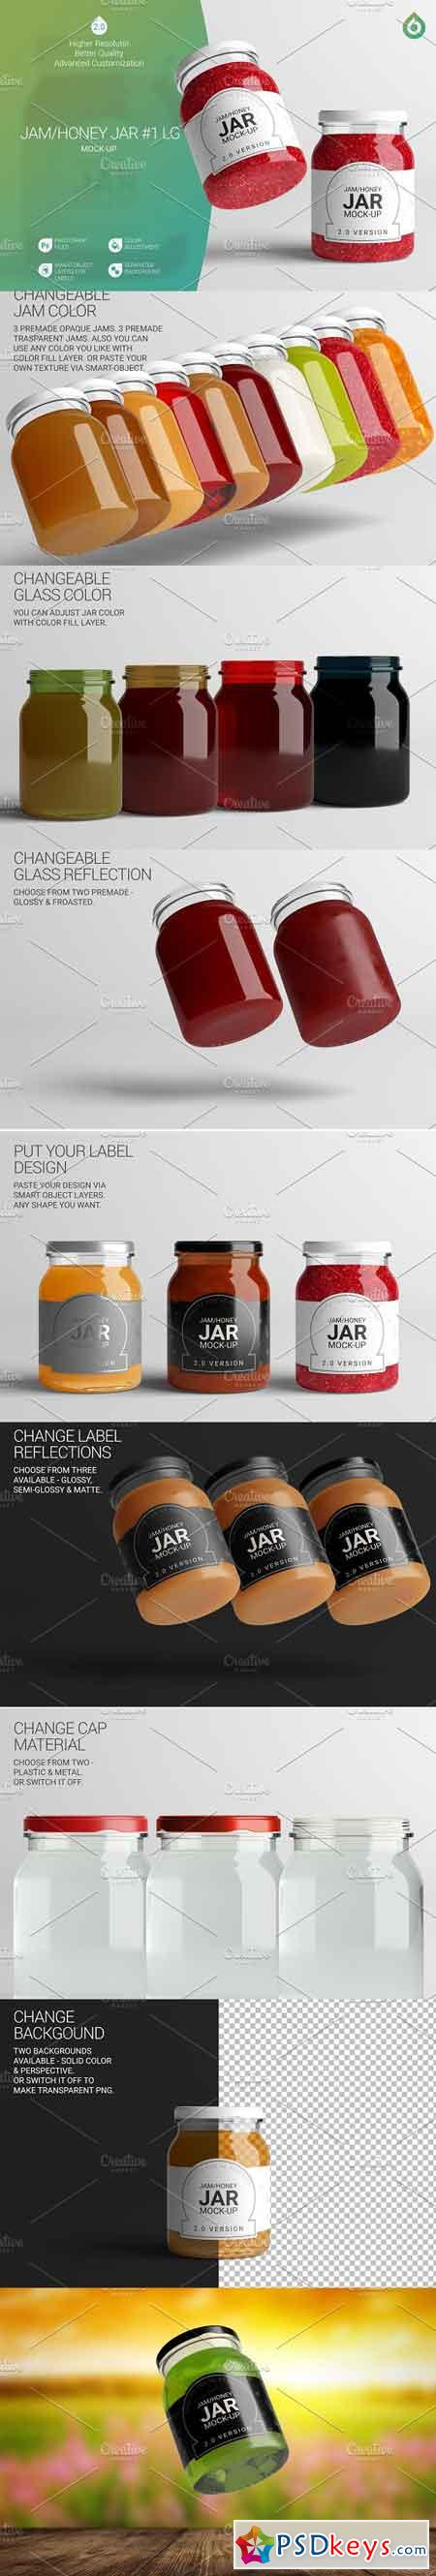 Jam Honey Jar LG Mock-Up #1 V2,0 3332012